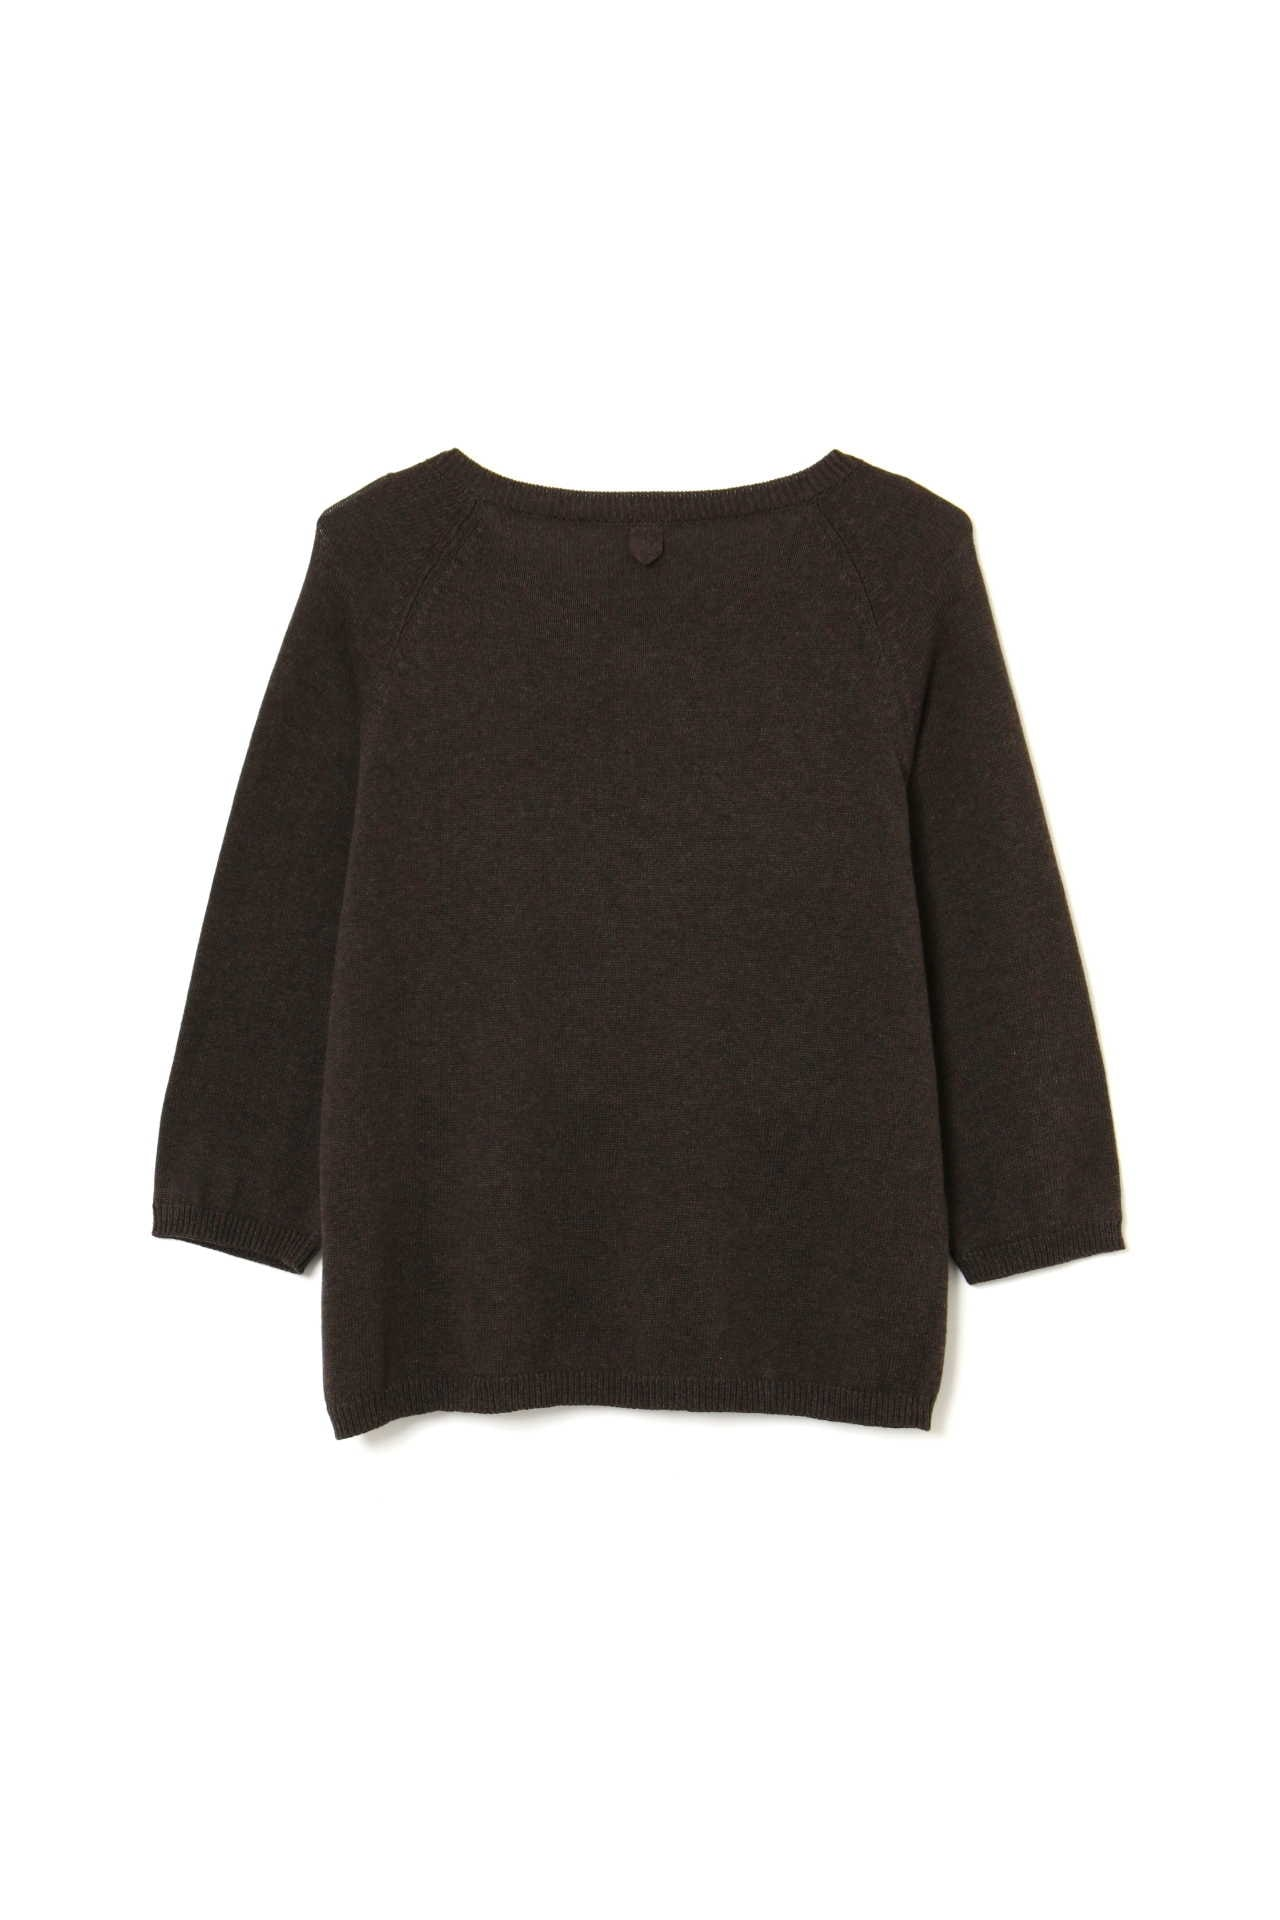 COTTON JUMPER6